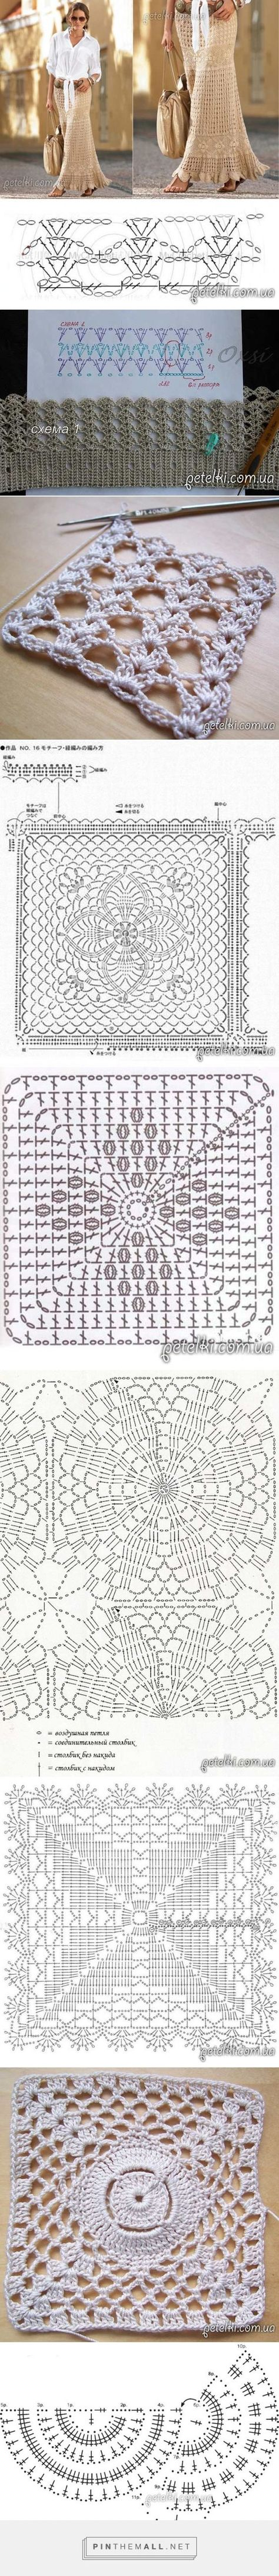 68 best manualidades lily images on Pinterest | Crochet clothes ...